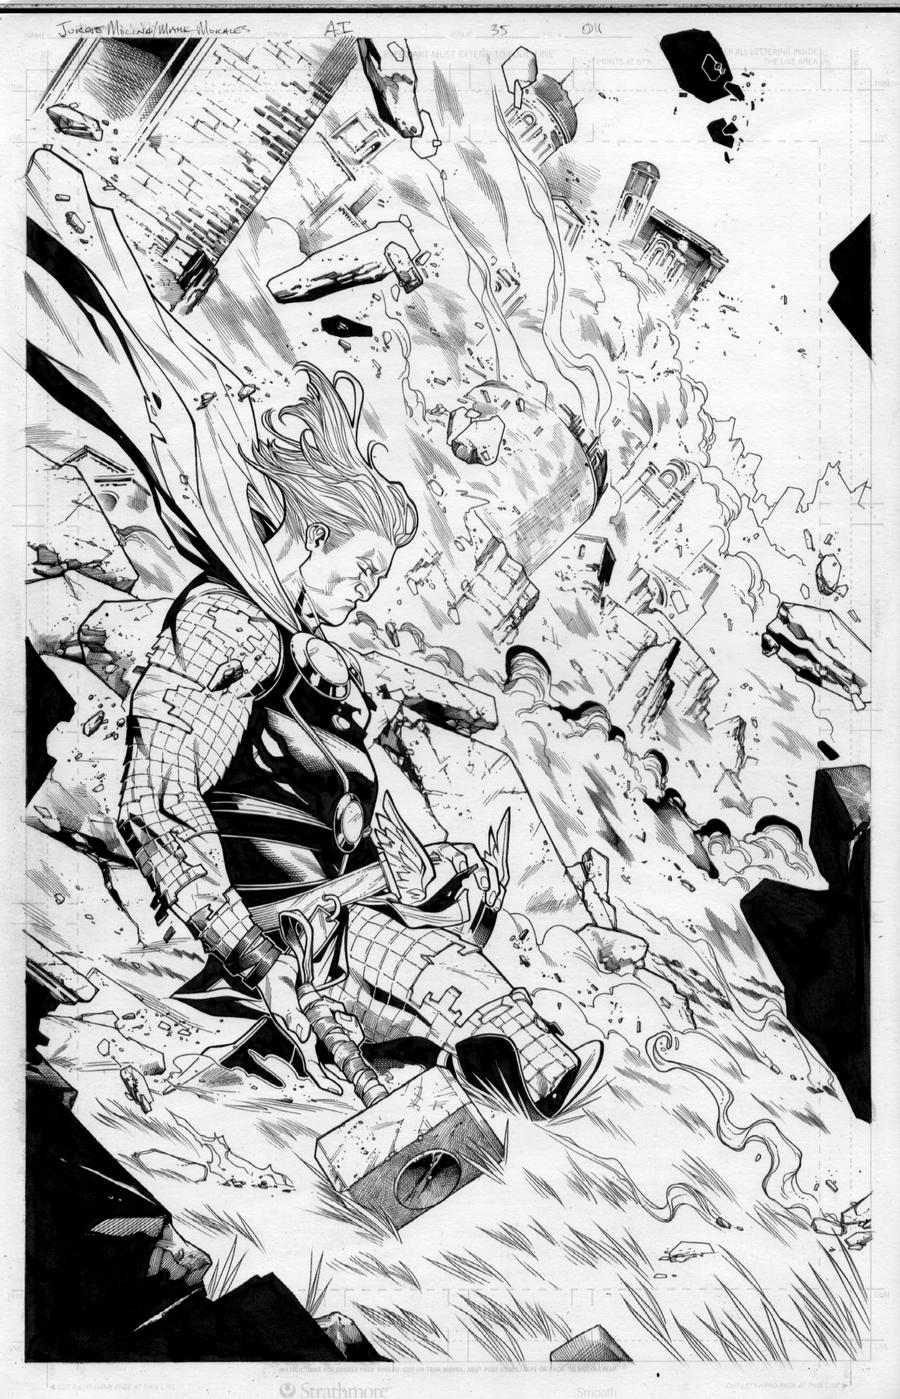 Mark Morales Thor inks by ZurdoM